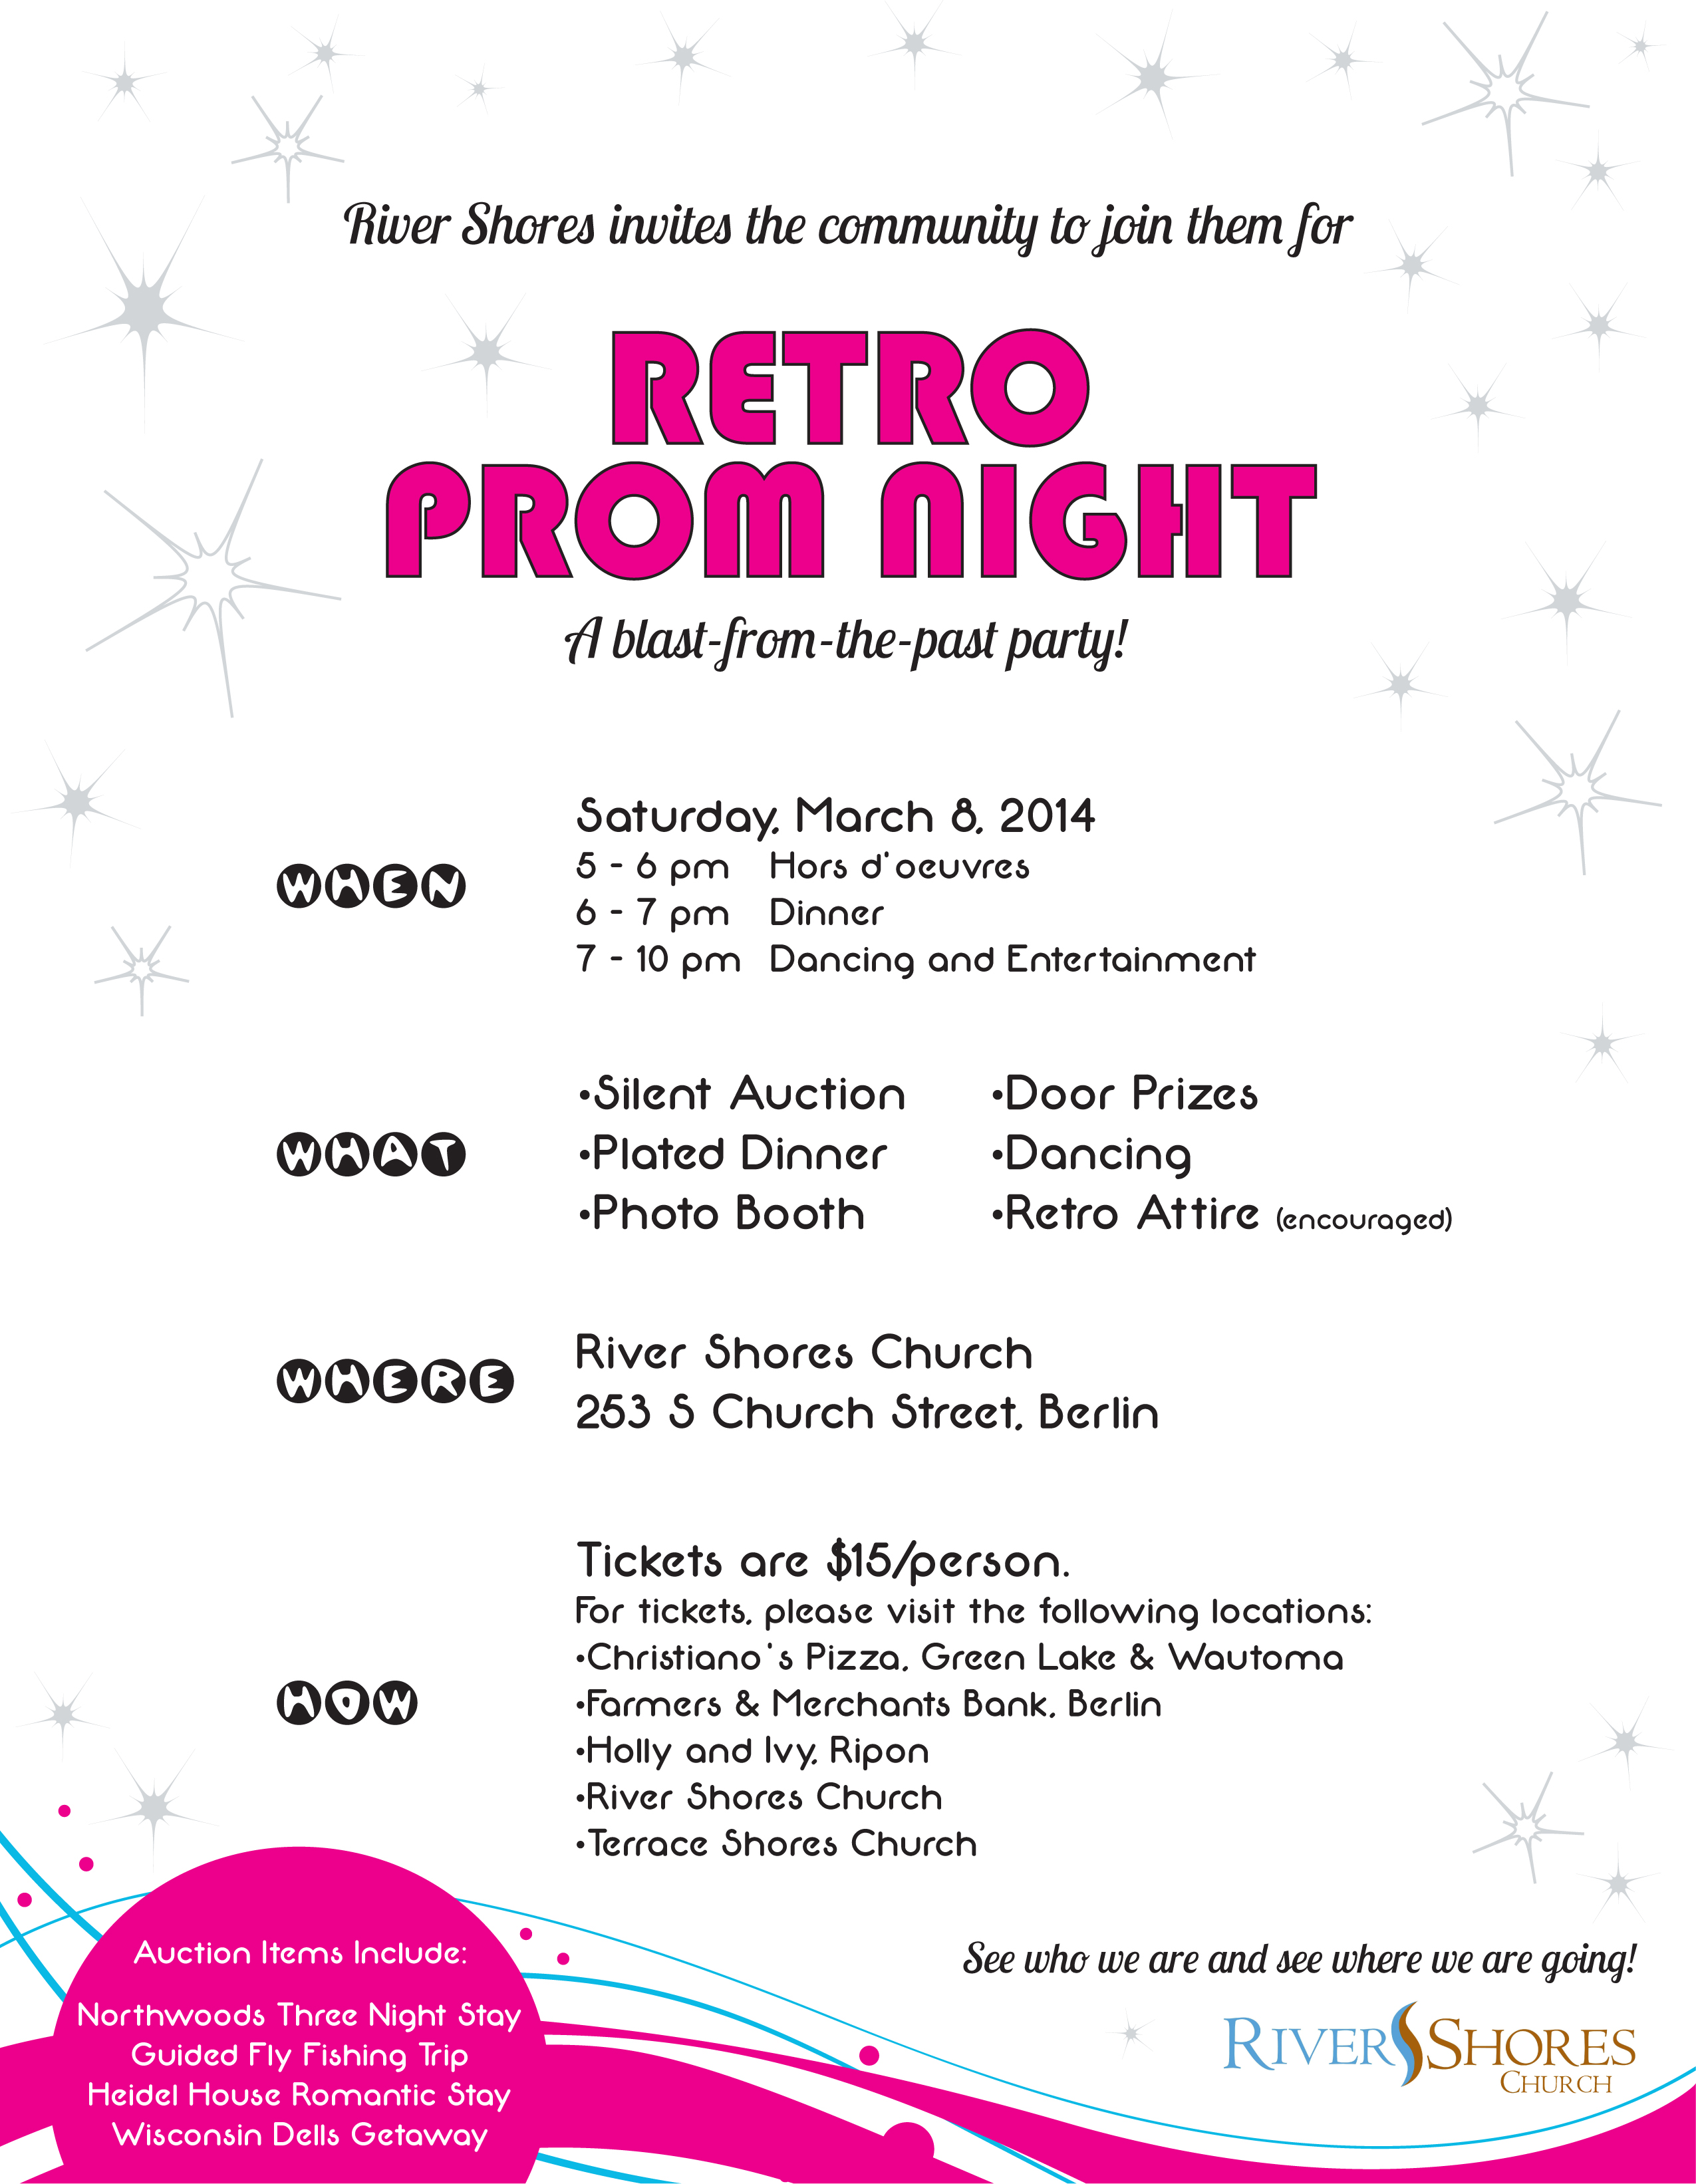 Retro prom terrace river shores church invite friends on facebook 1betcityfo Images